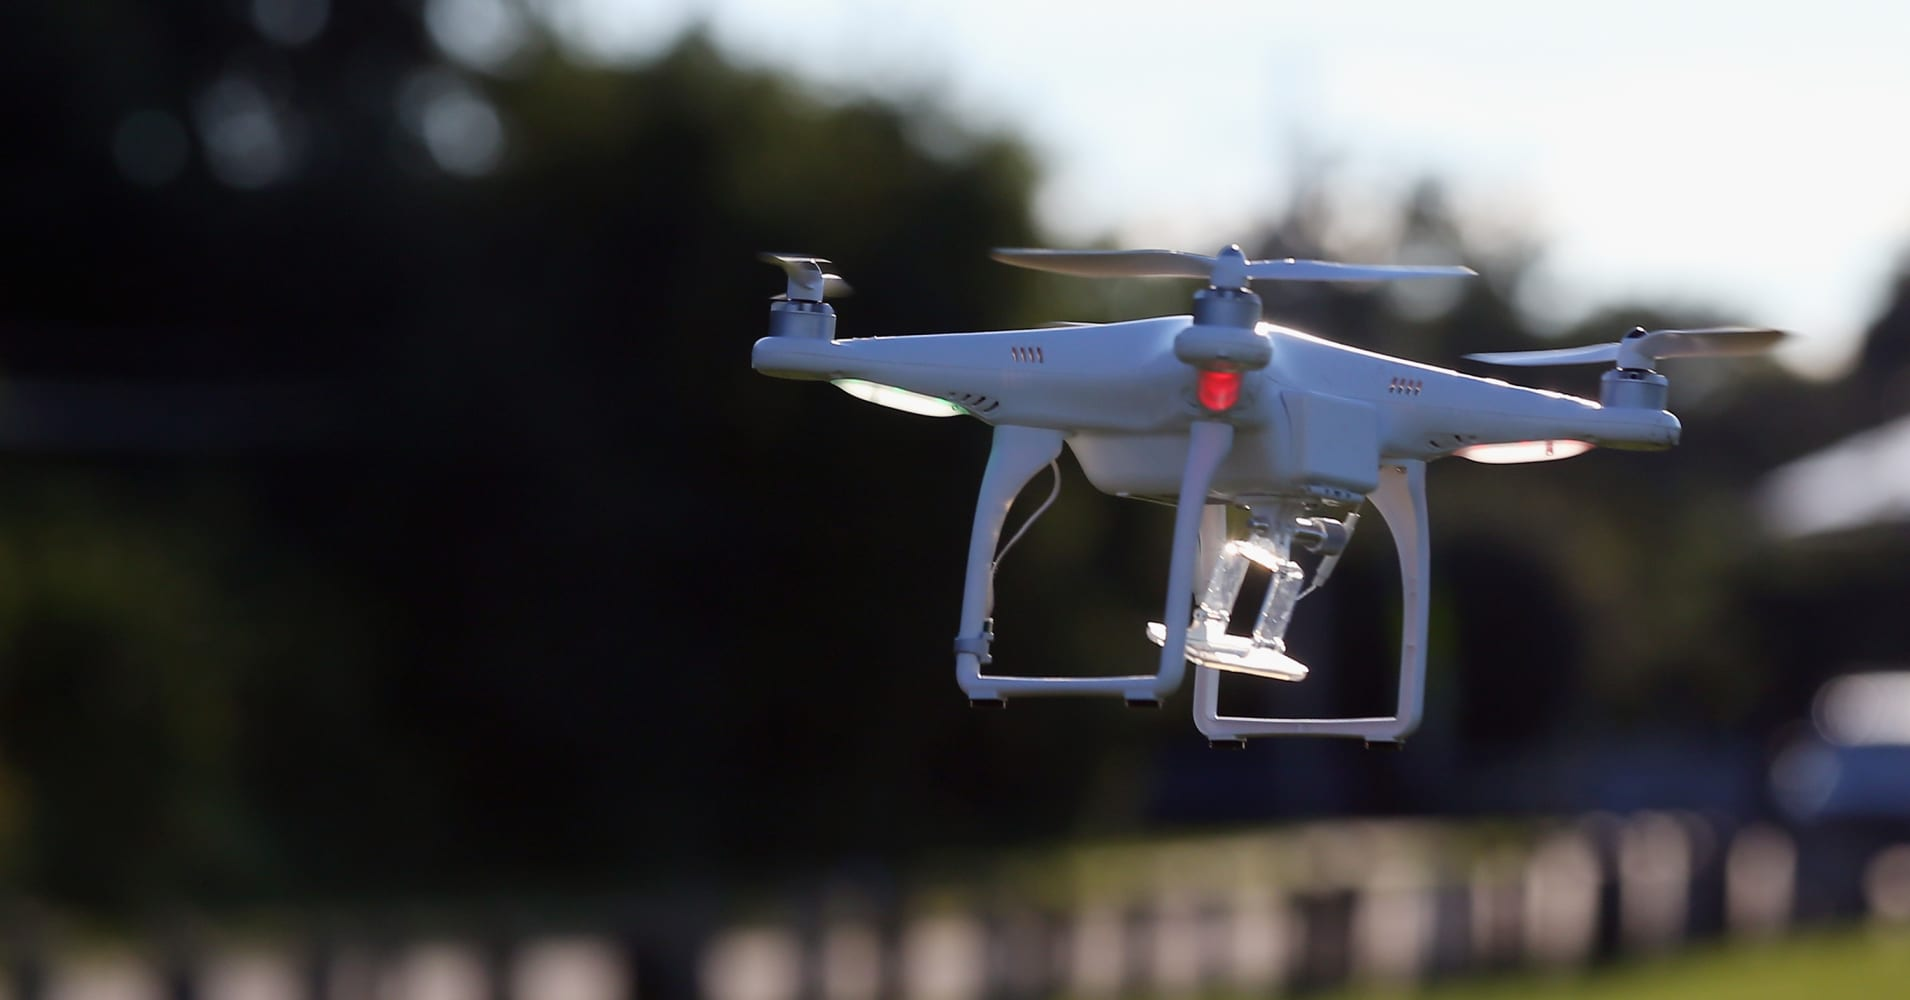 Chinese drone maker creates no-fly zones around airports in 32 European countries